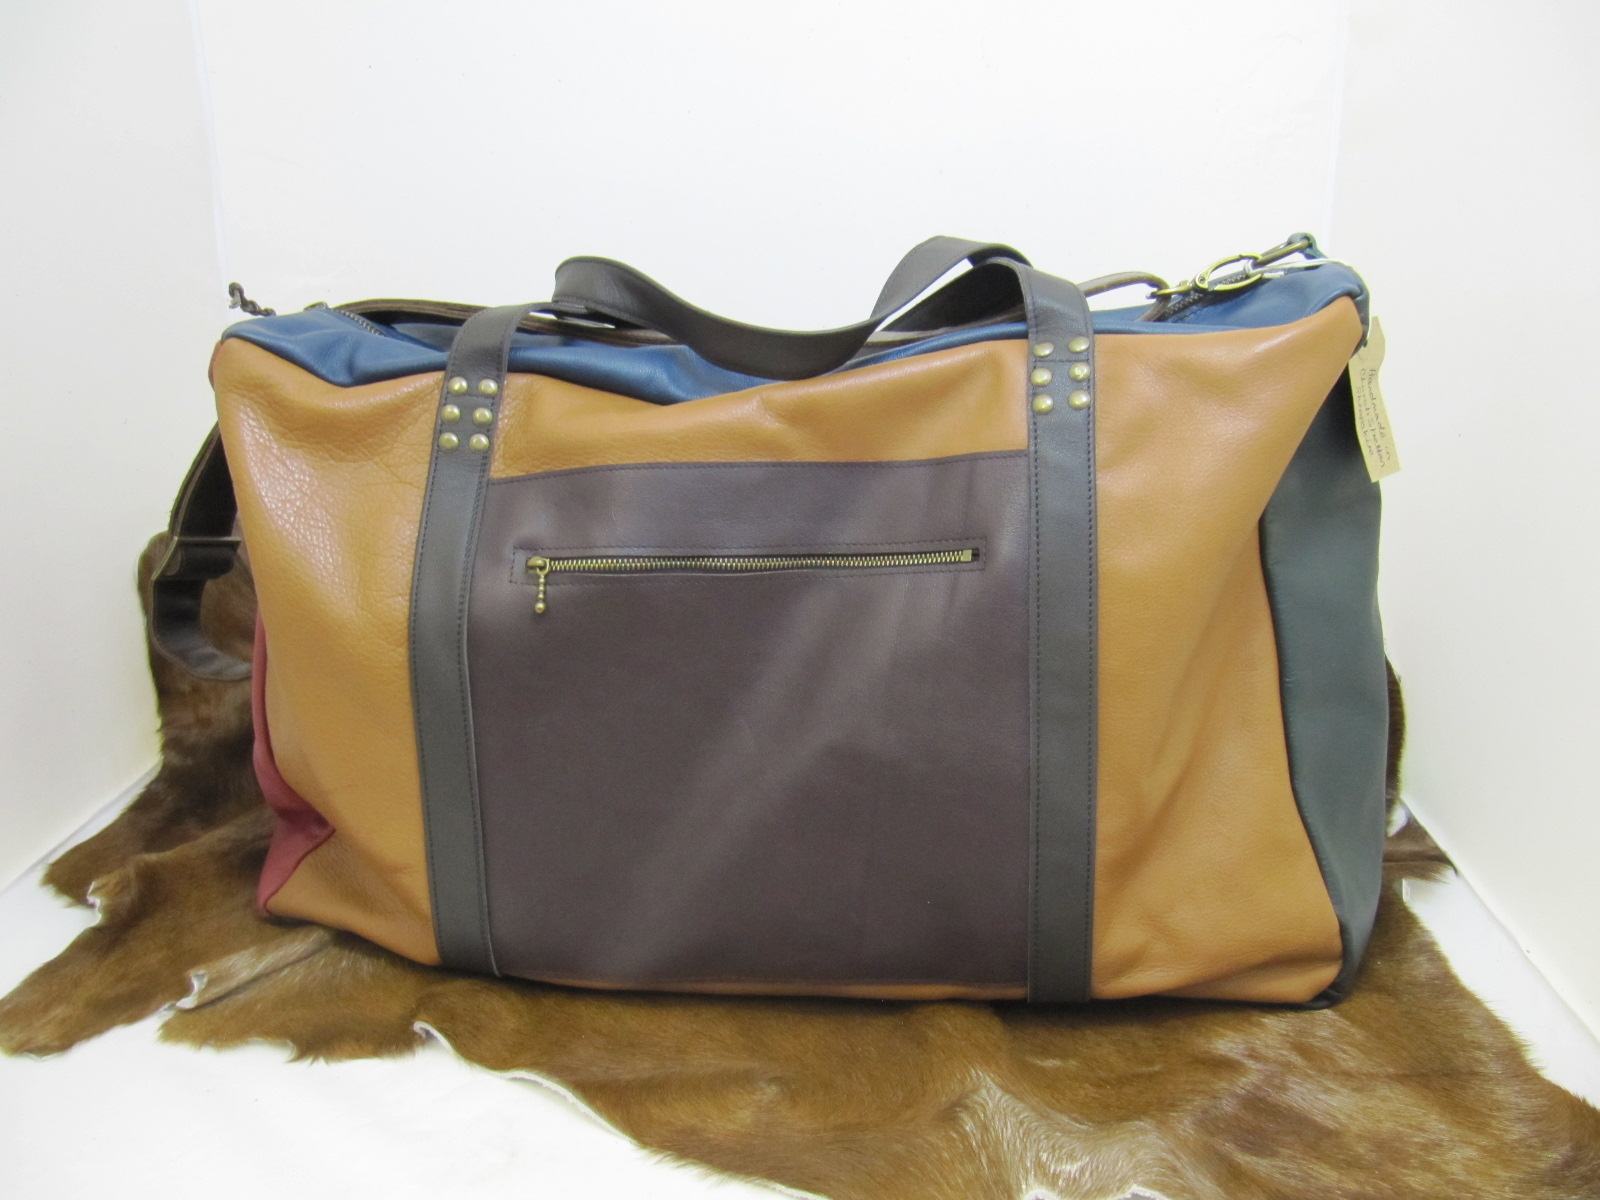 Flight Travel bag in Multi-coloured leather